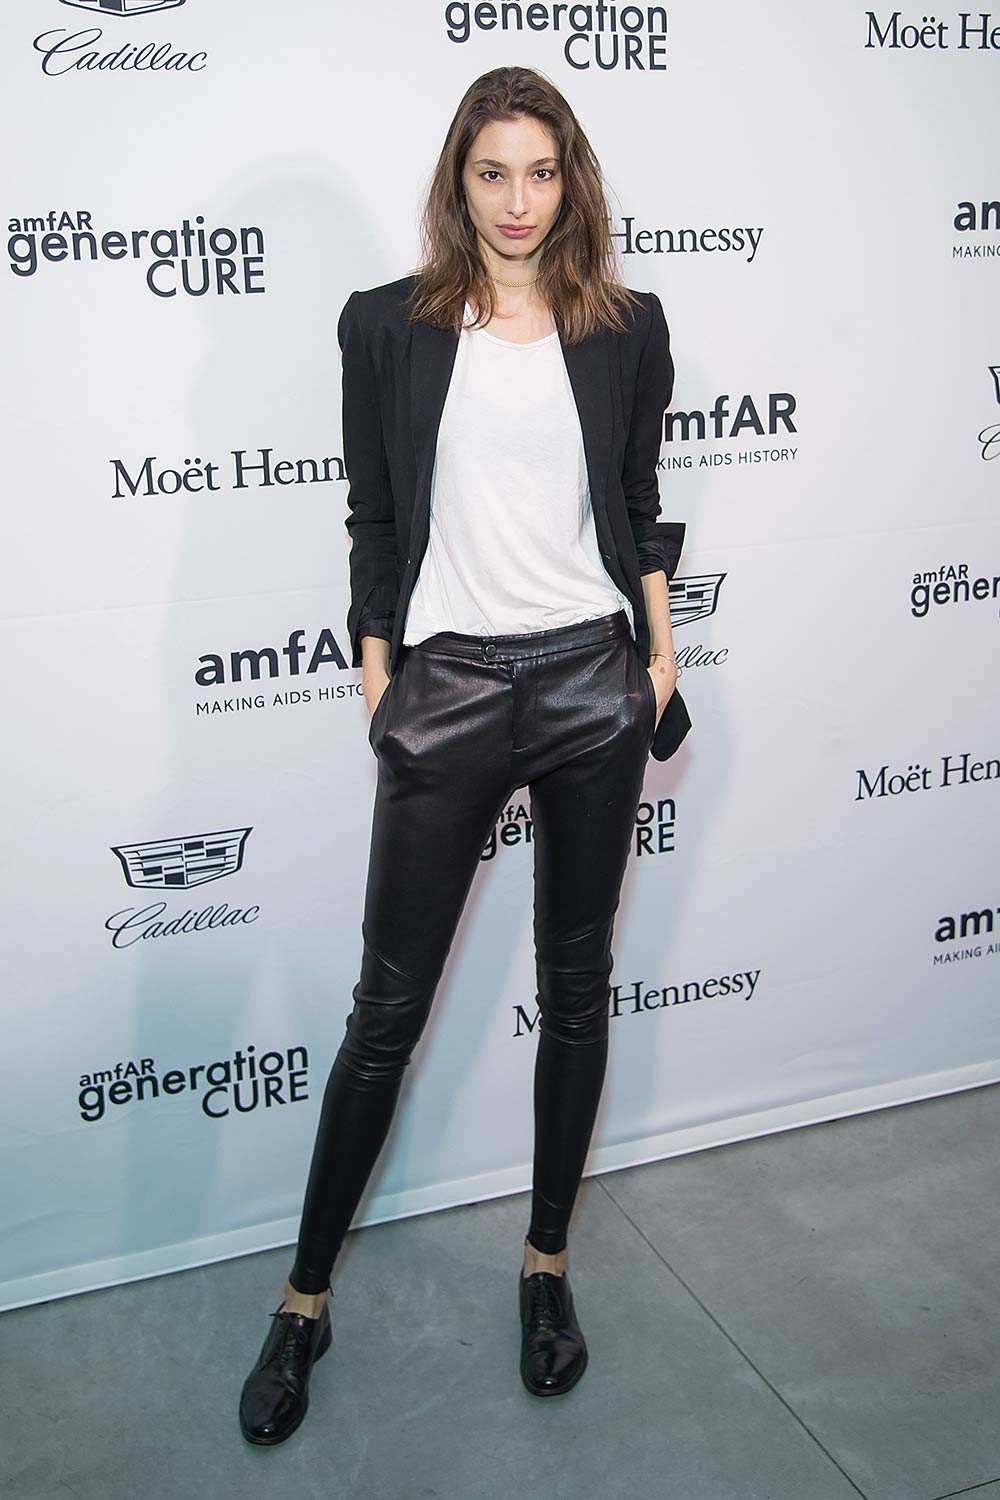 Alexandra Agoston attends the 2016 amfAR GenerationCure Holiday Party